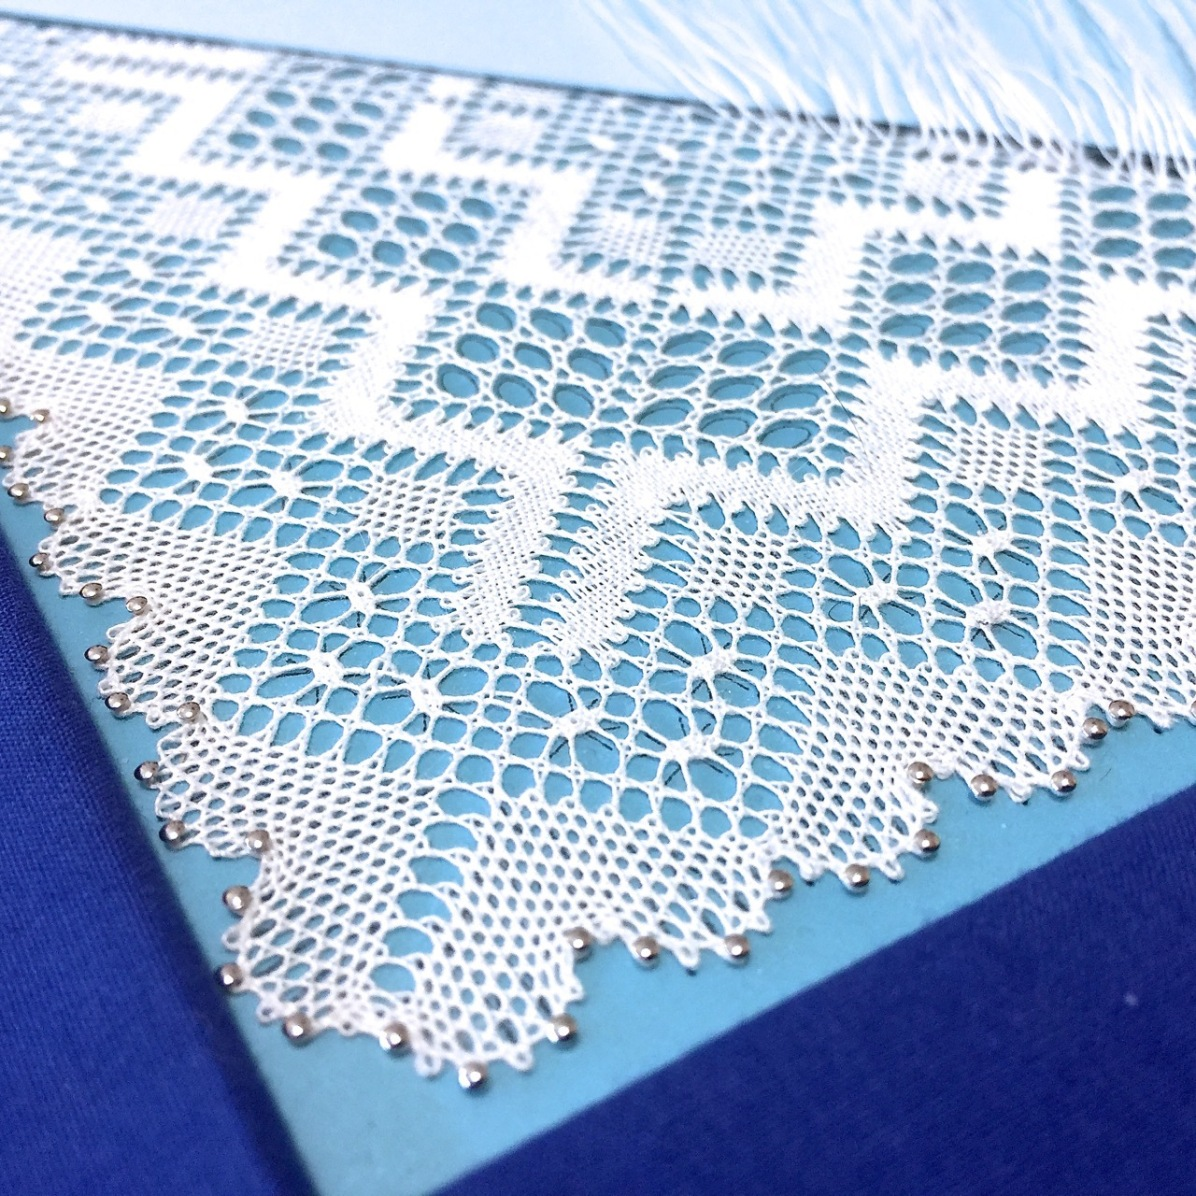 Torchon lace made by Yvette Slabbert. Design by Christine Johnson.